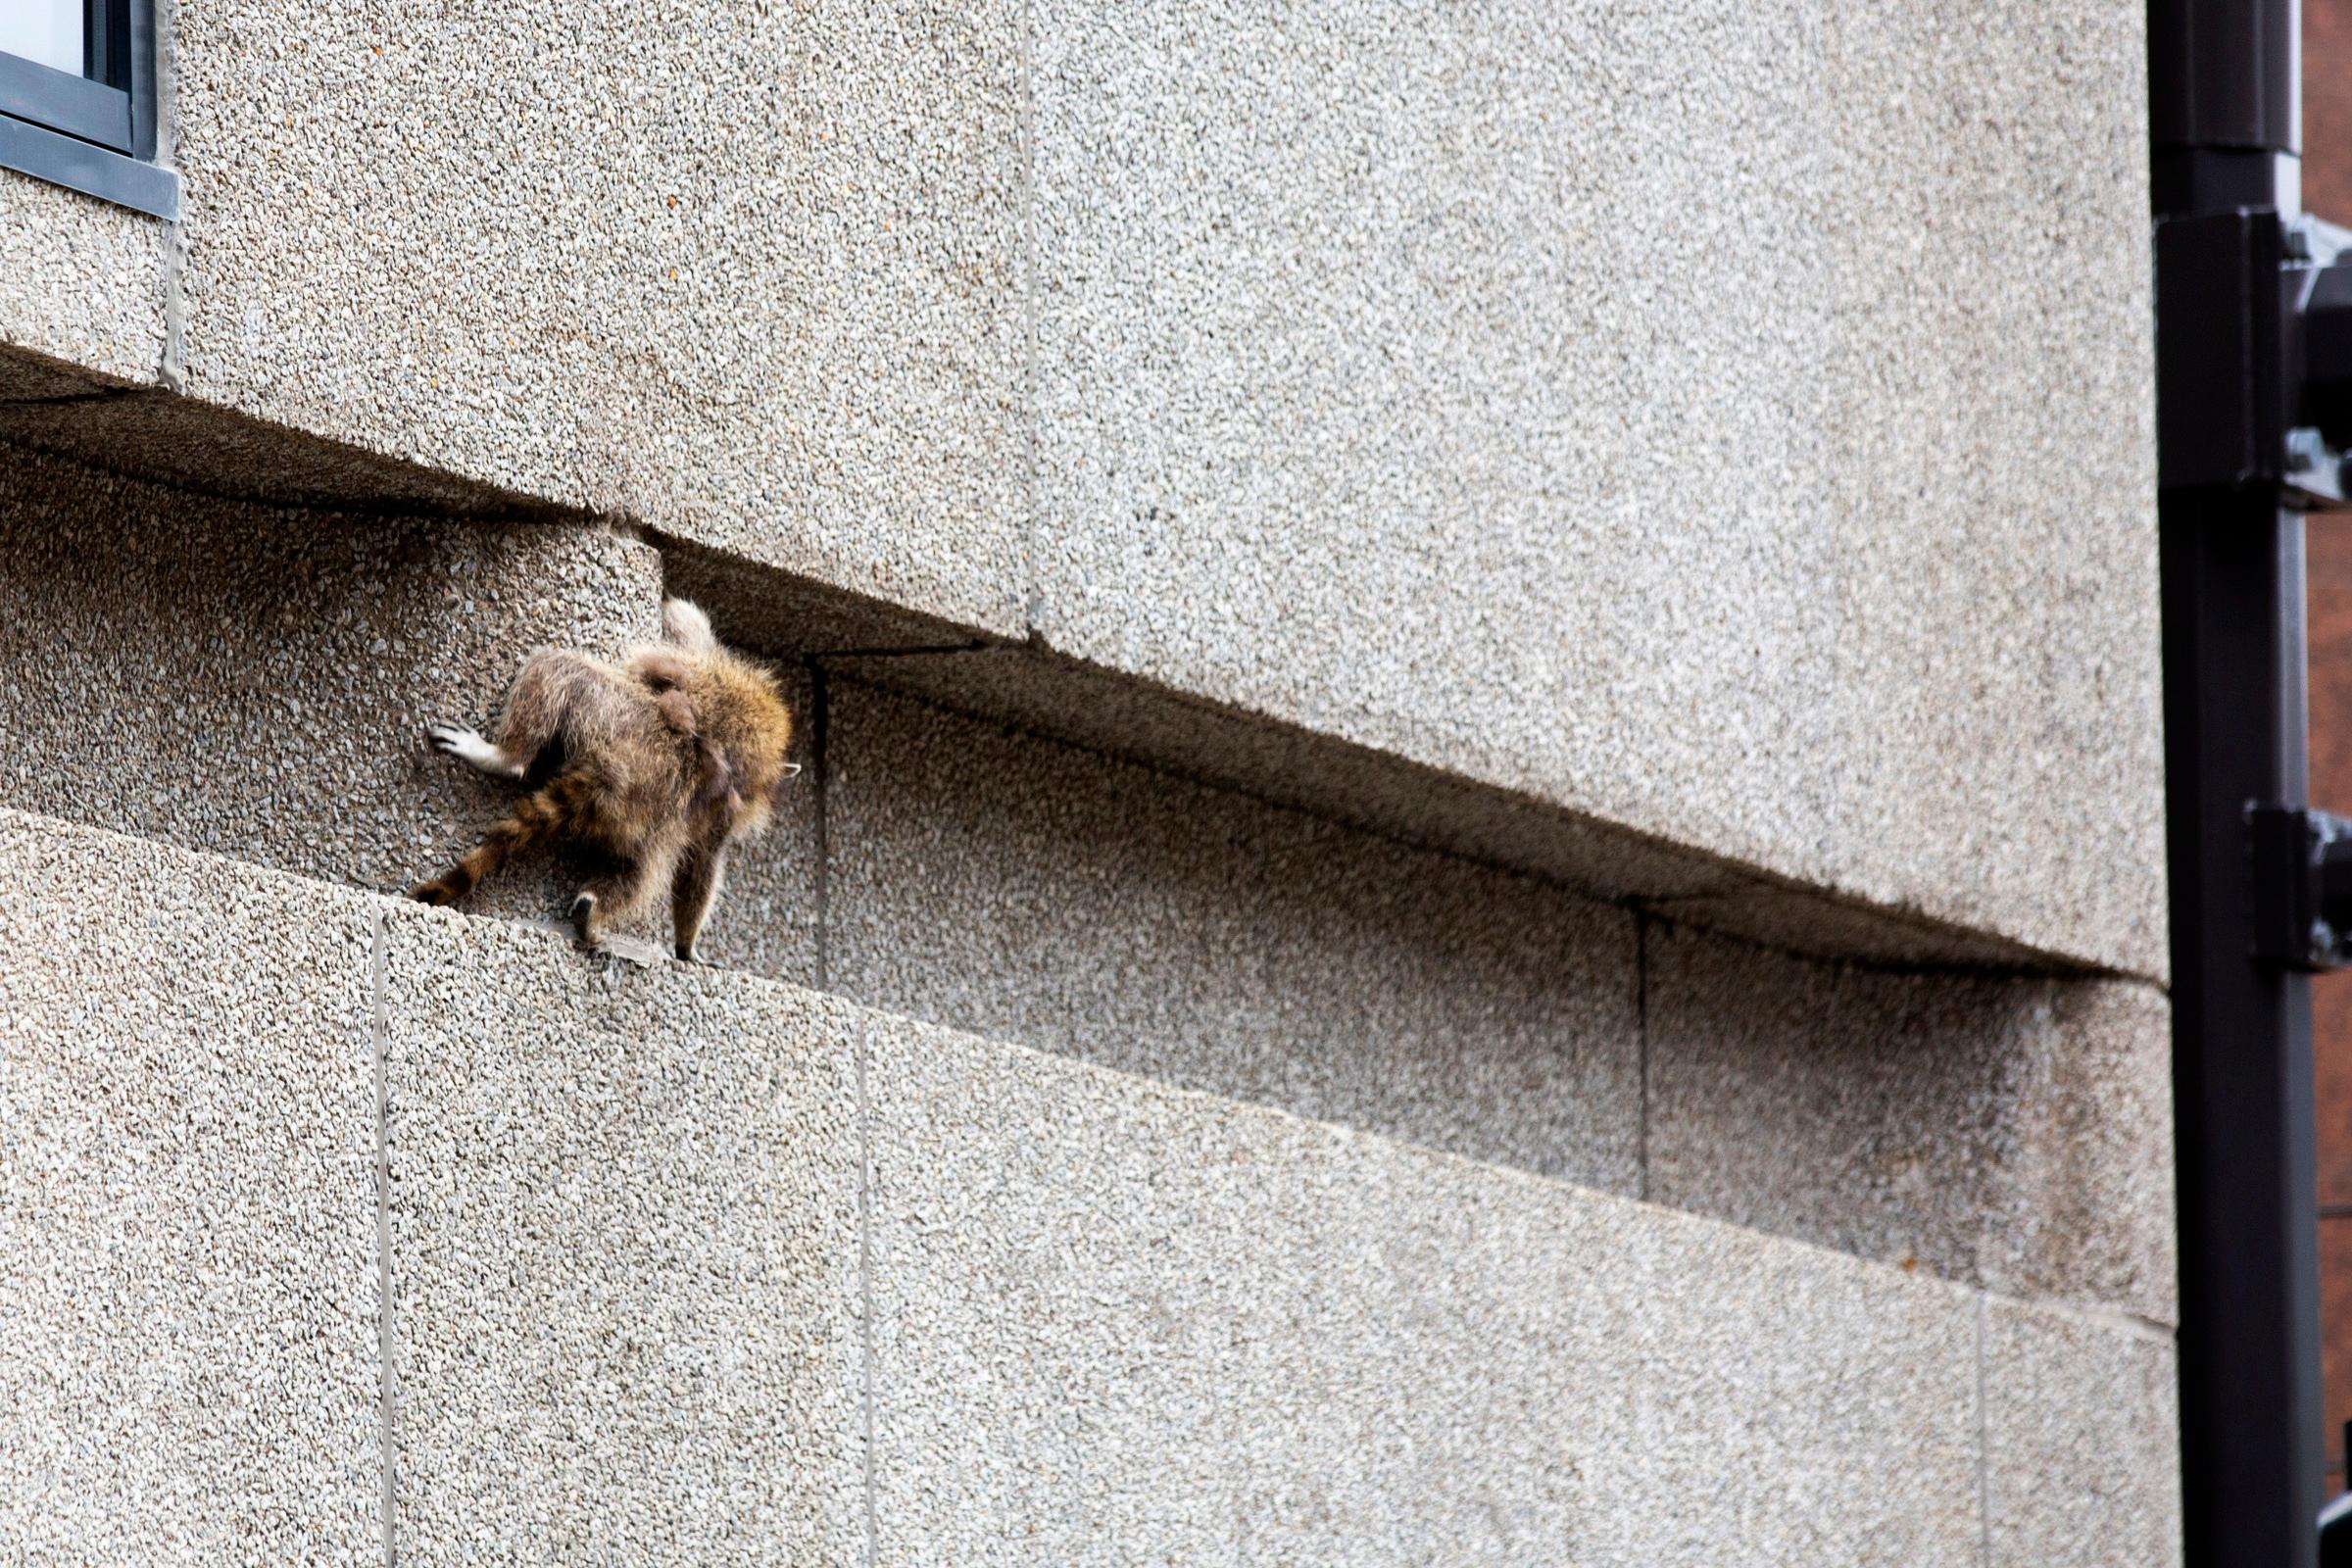 A raccoon scrambles along a ledge on the side of the Town Square building in downtown St. Paul, Minn., on Tuesday, June 12, 2018. (Evan Frost/Minnesota Public Radio via AP)